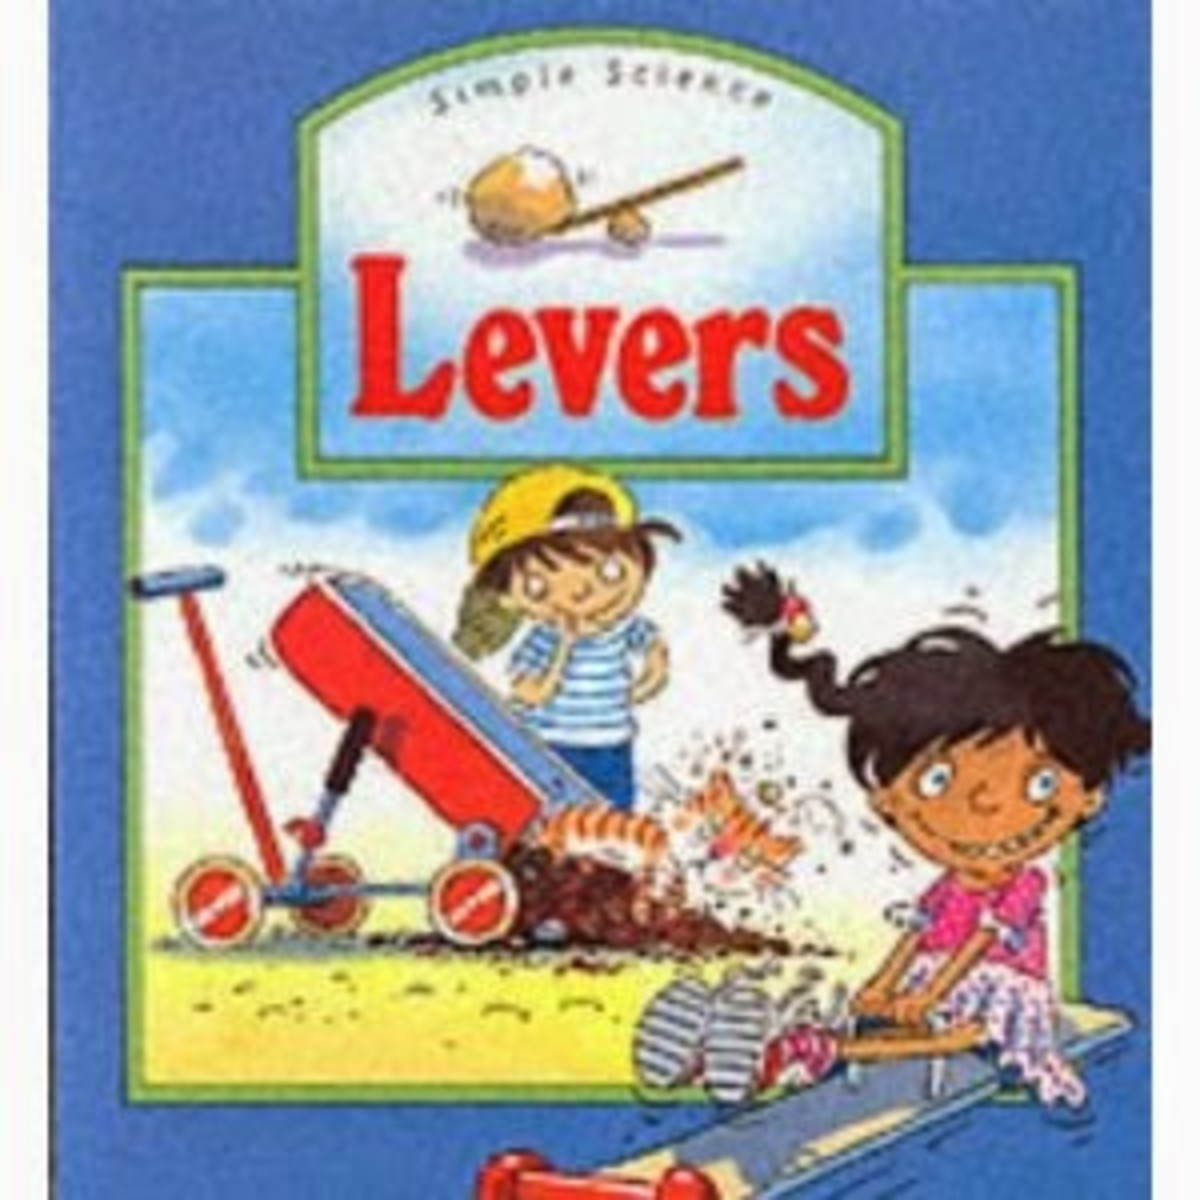 Levers by Caroline Rush